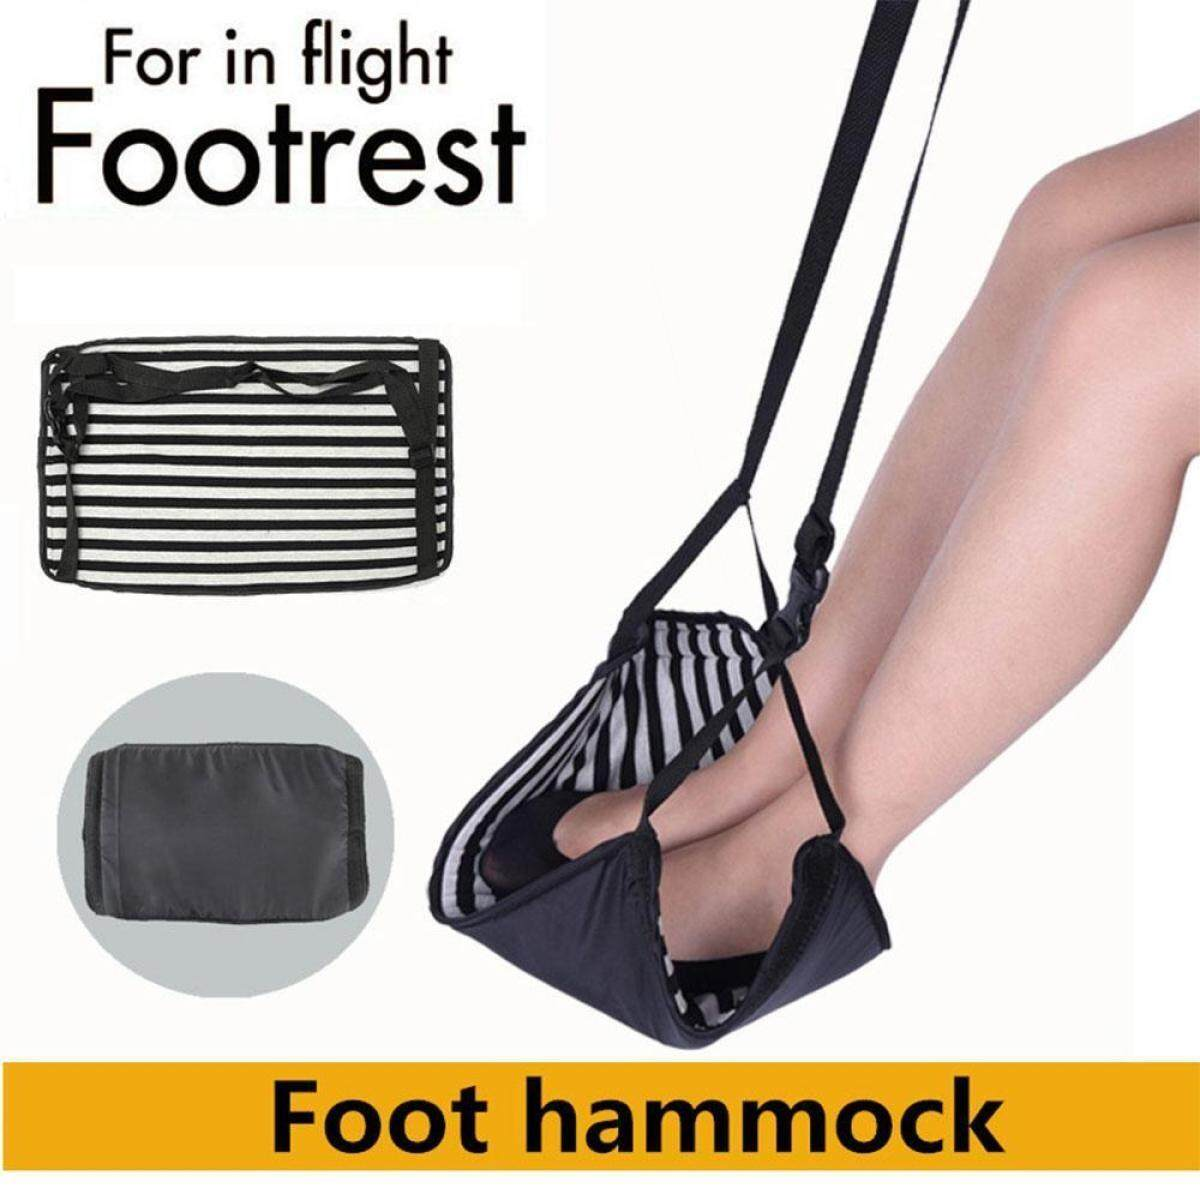 Airplane Footrest, Leg Hammock, Portable Travel Carry-On Flight Foot Rest, Prevent Swelling and Sorenes, Adjustable Feet Relax Hammock with Storage Bag for Home Office Car Plane